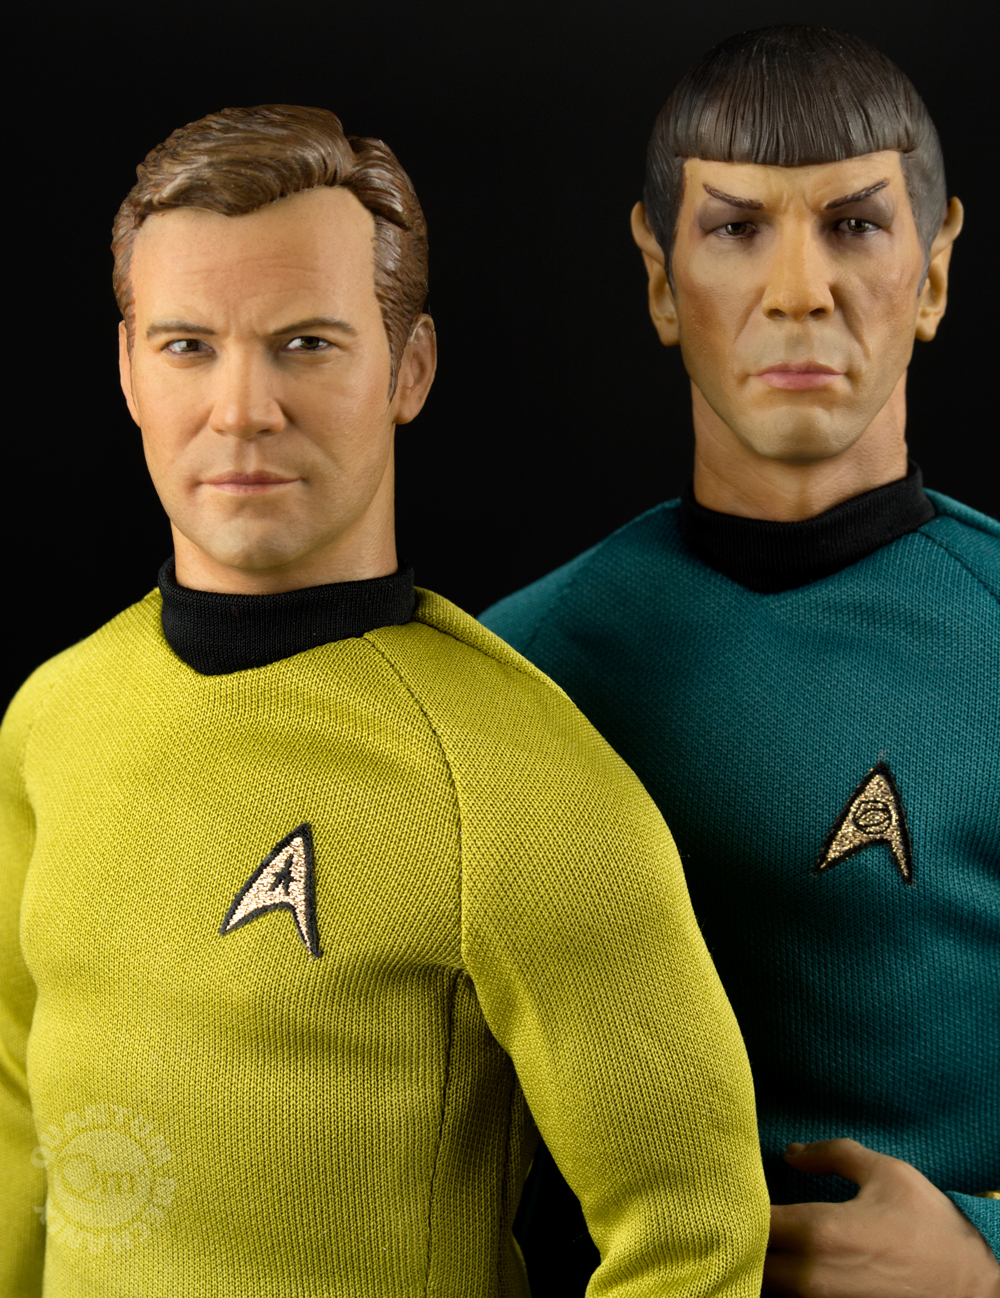 QMX Star Trek Captain Kirk and Spock 2